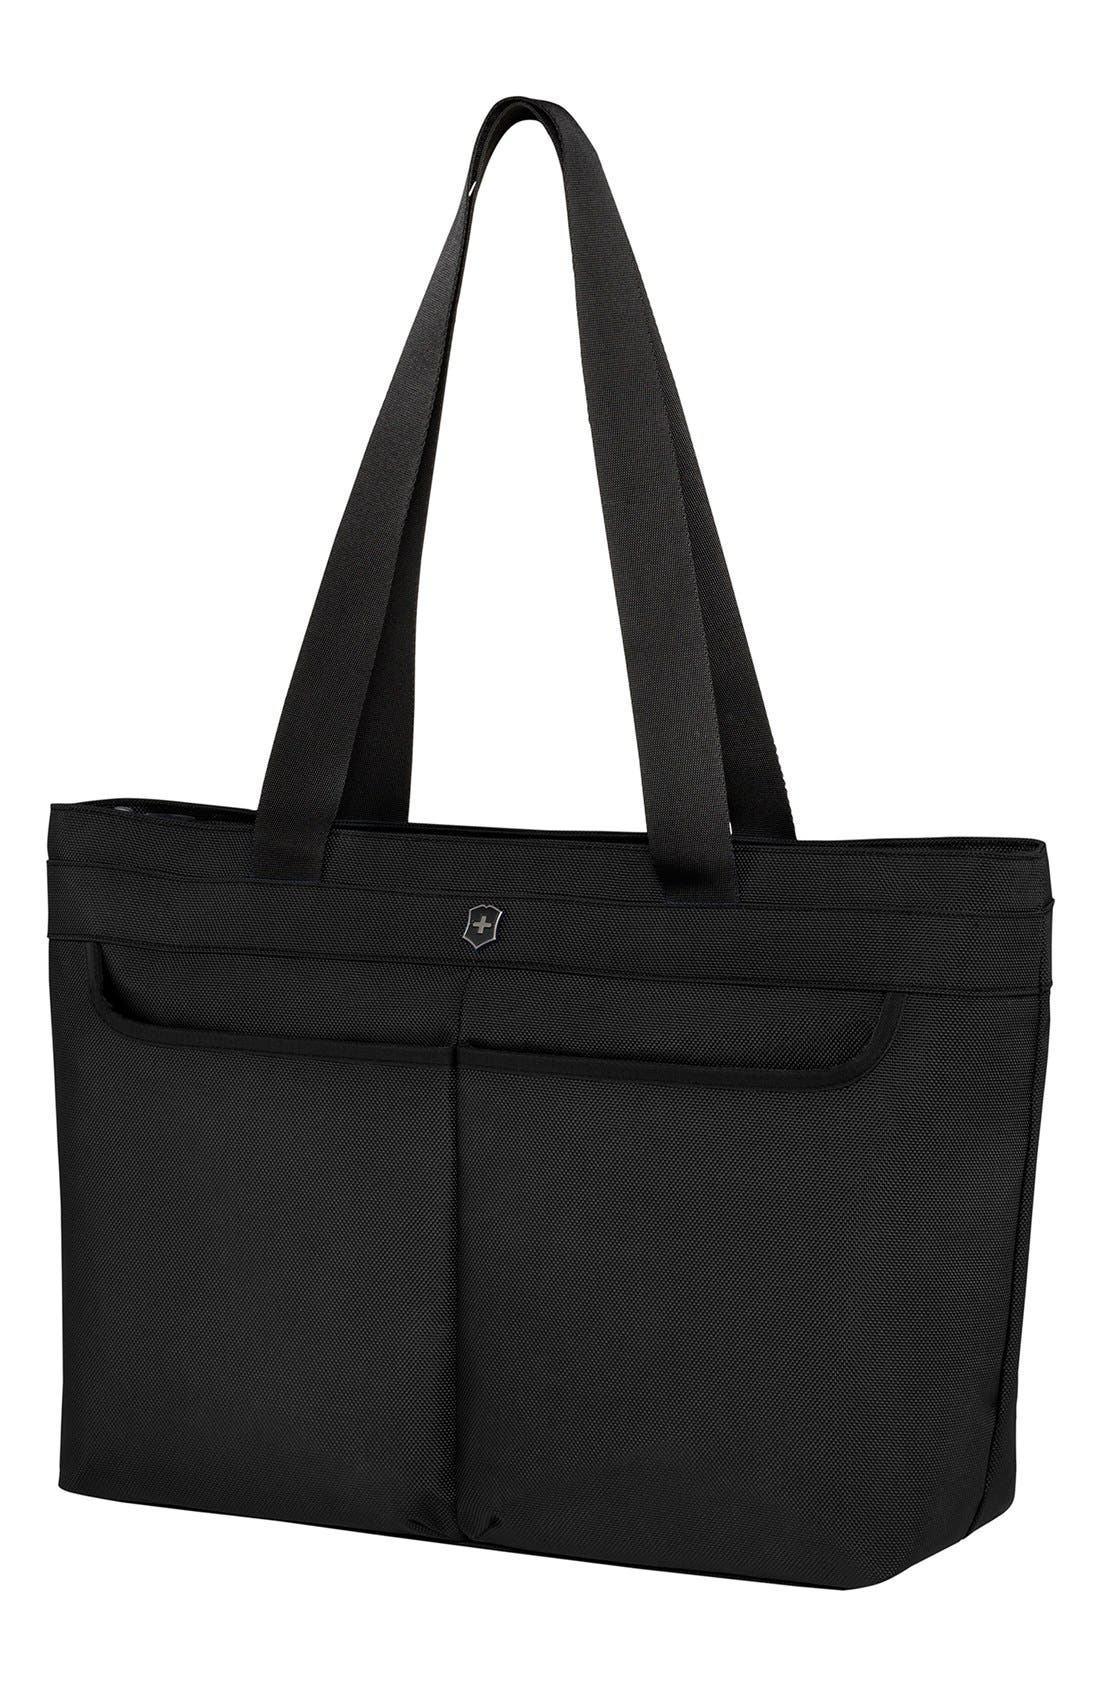 Alternate Image 1 Selected - Victorinox Swiss Army® 'WT 5.0' Shopping Tote